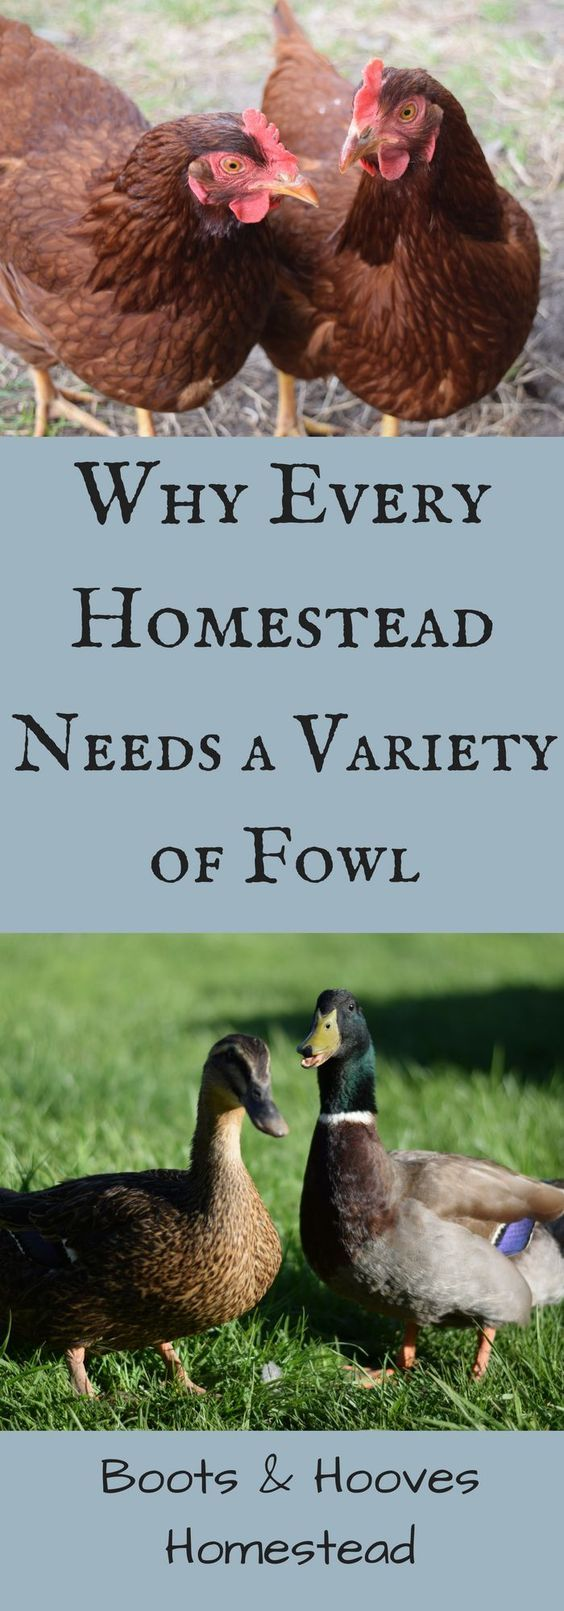 The Benefits of Keeping a Variety of Fowl on the Homestead - Boots & Hooves Homestead